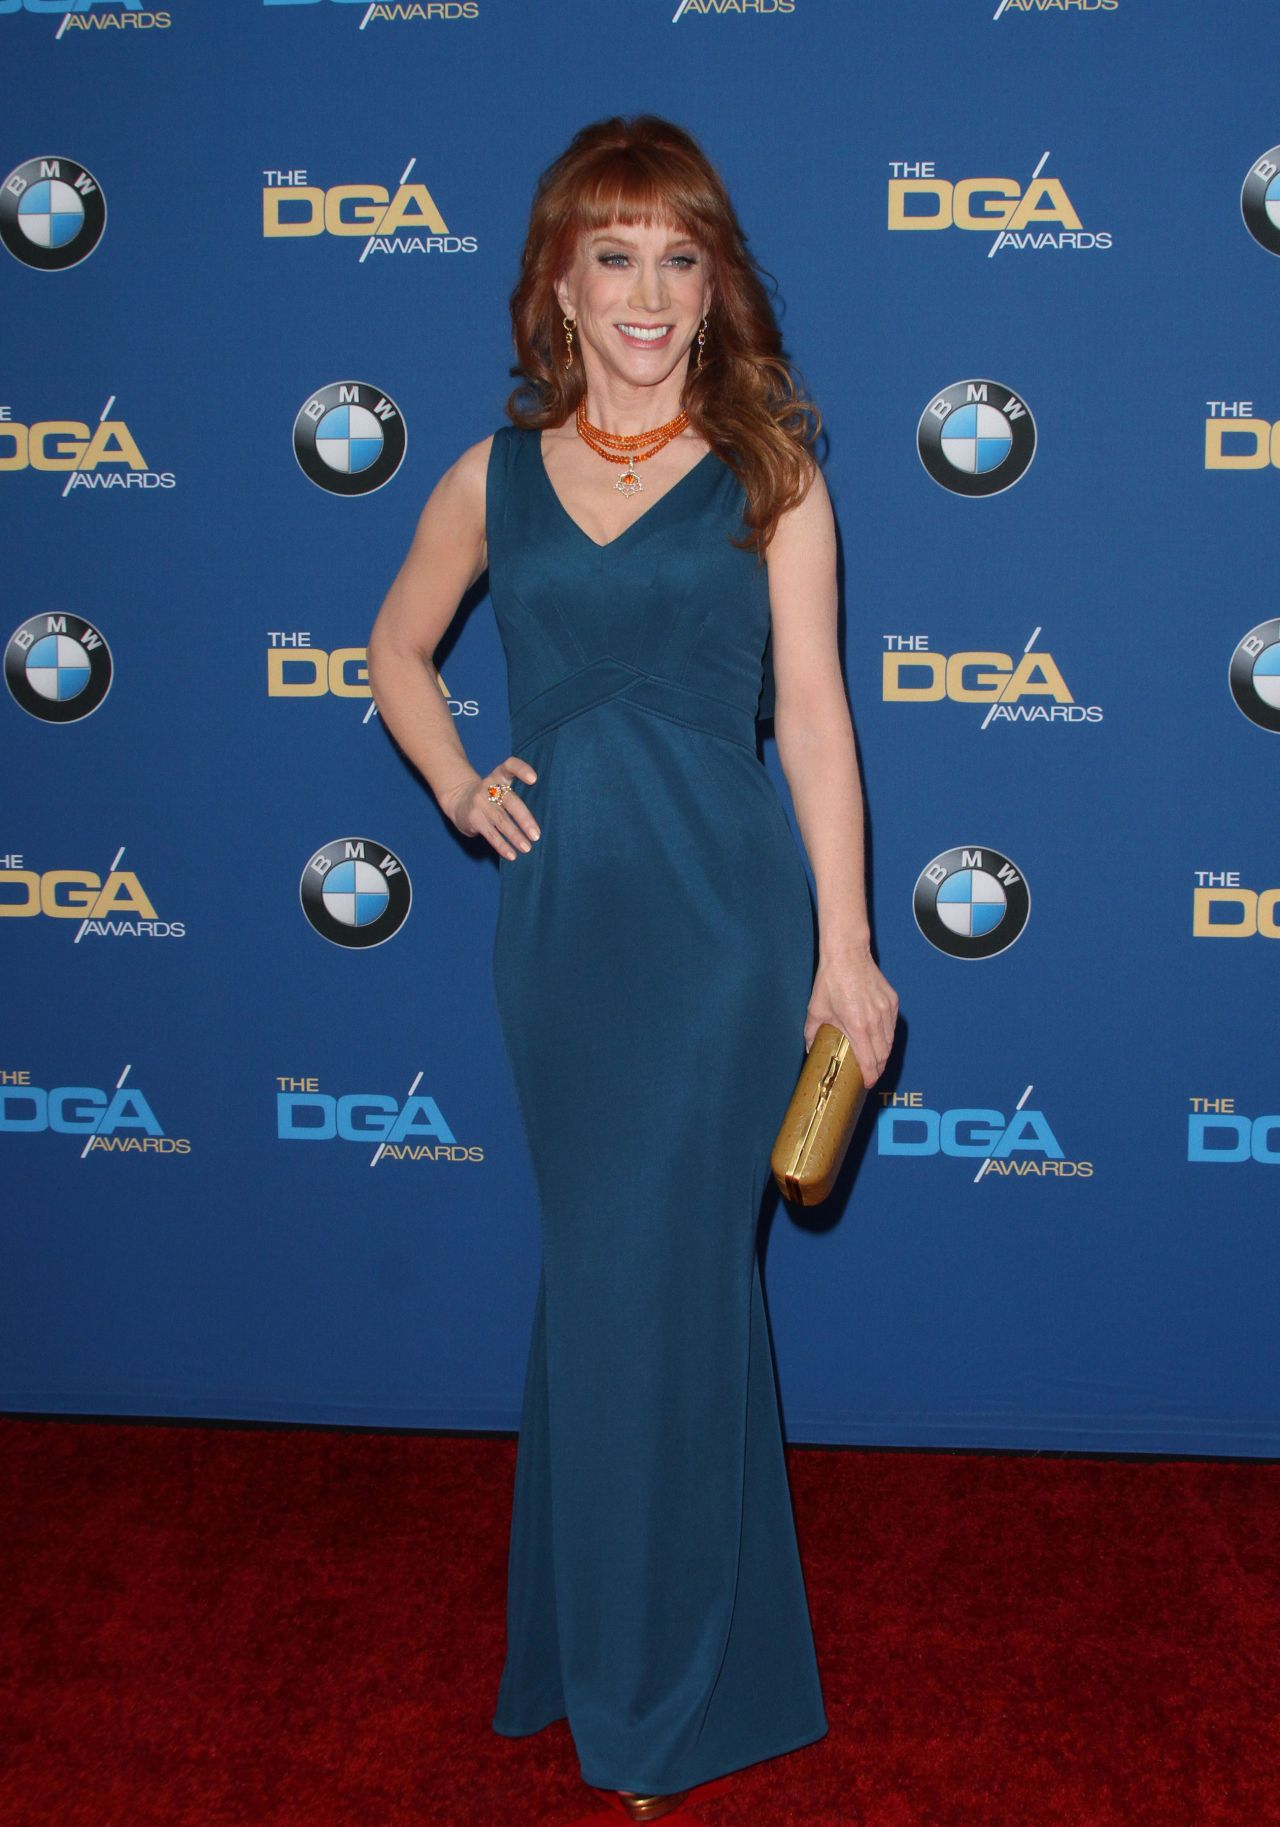 kathy-griffin-directors-guild-of-america-awards-2016-in-los-angeles-1